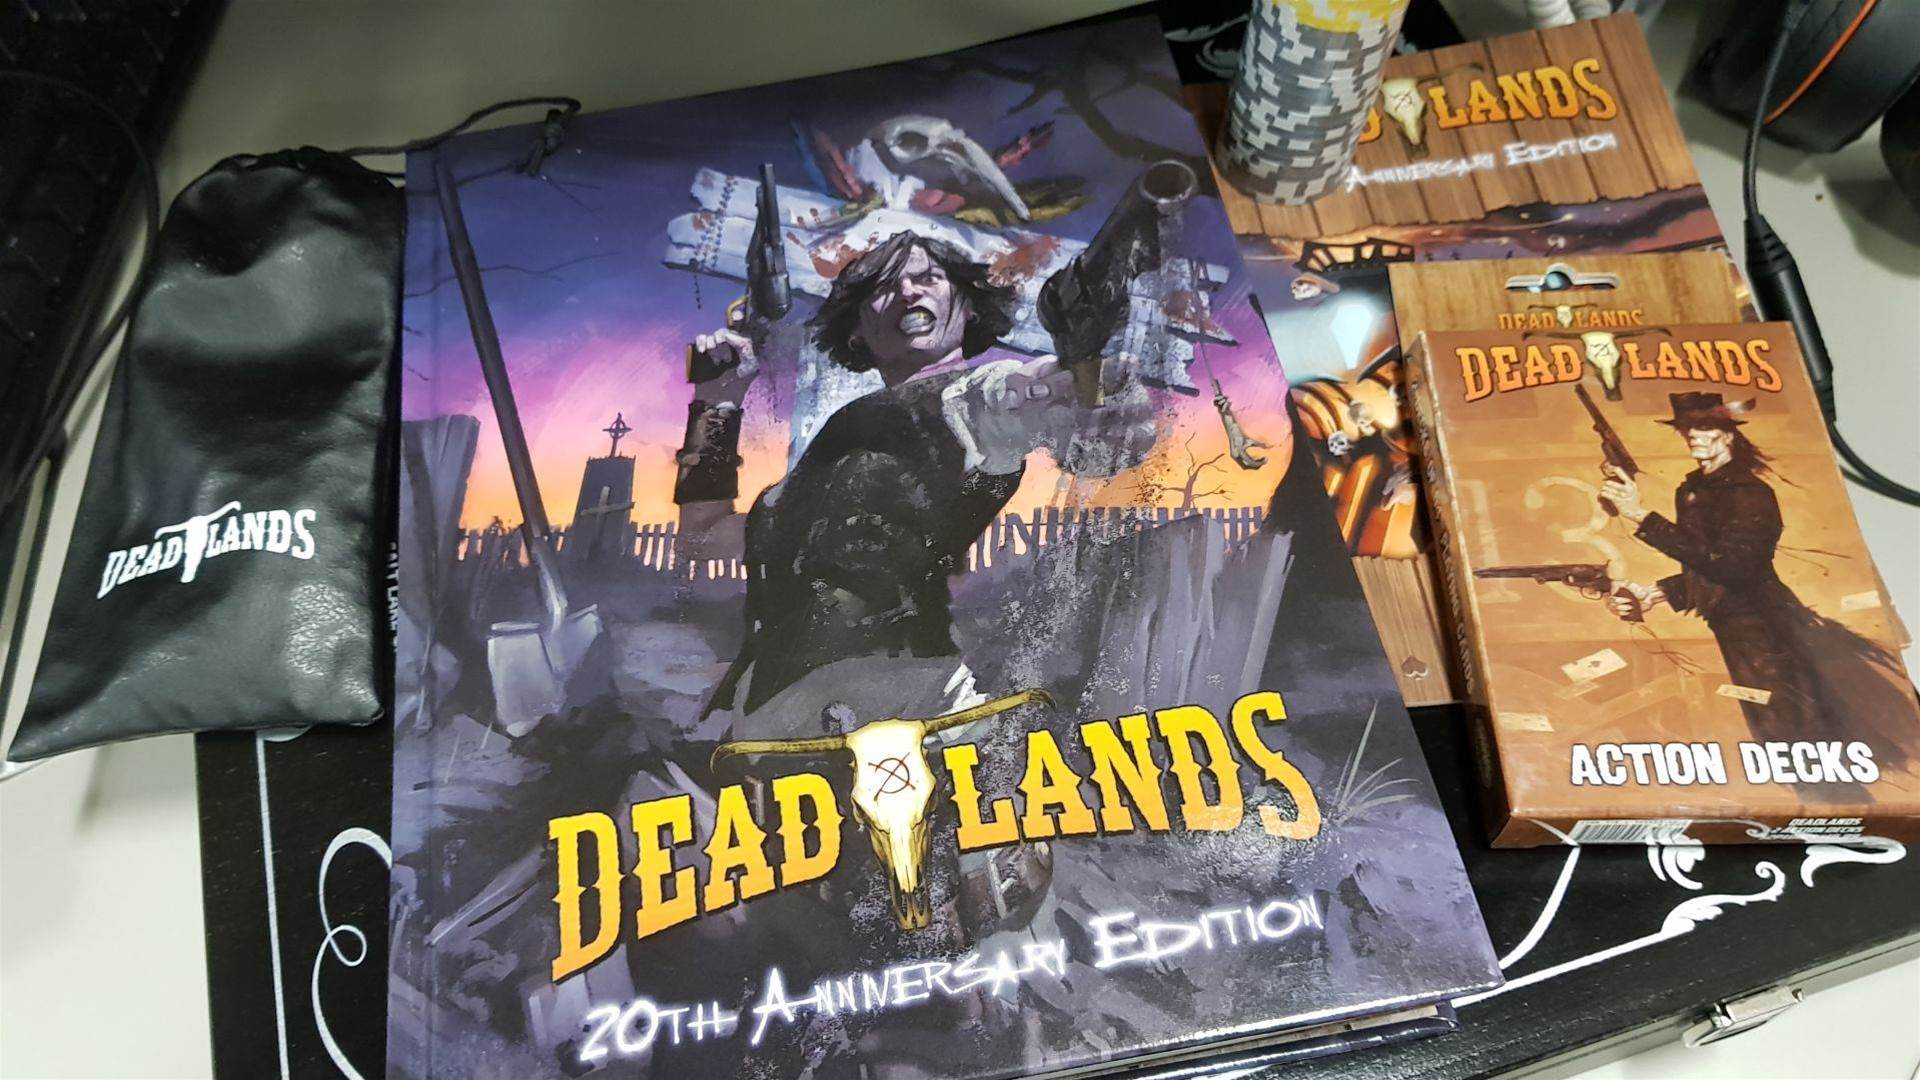 The Deadlands 20th Anniversary kickstarter package is pretty damn neat